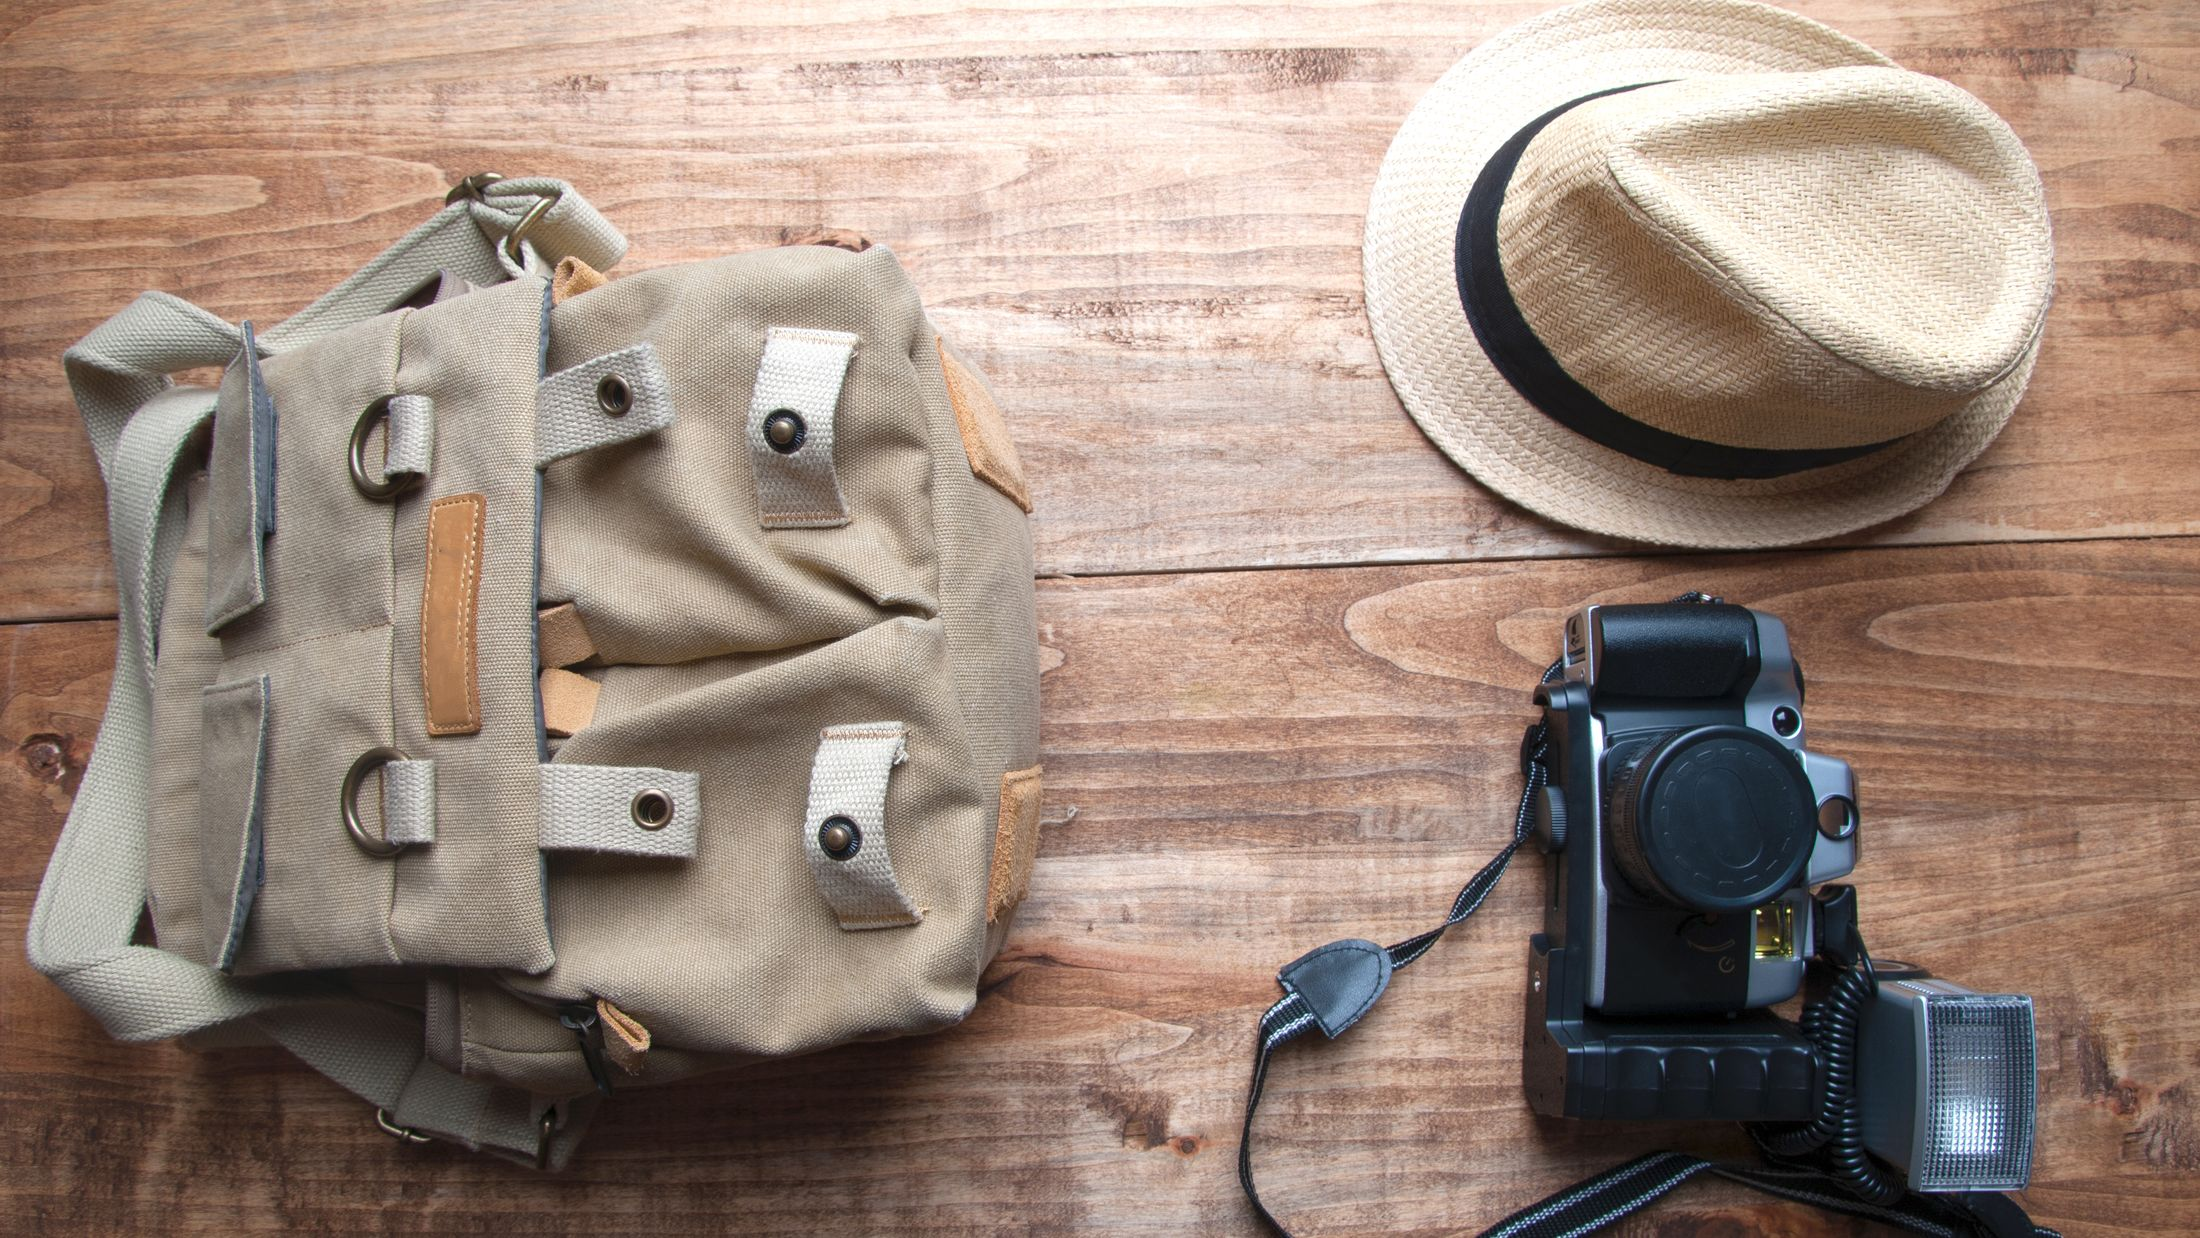 Tourism concept. Backpack, hat , binocular and old camera isolated on wooden background.; Shutterstock ID 437880175; PO: Project Italy - Facilities images; Job: Project Italy - Facilities images; Client: H&J/Citalia